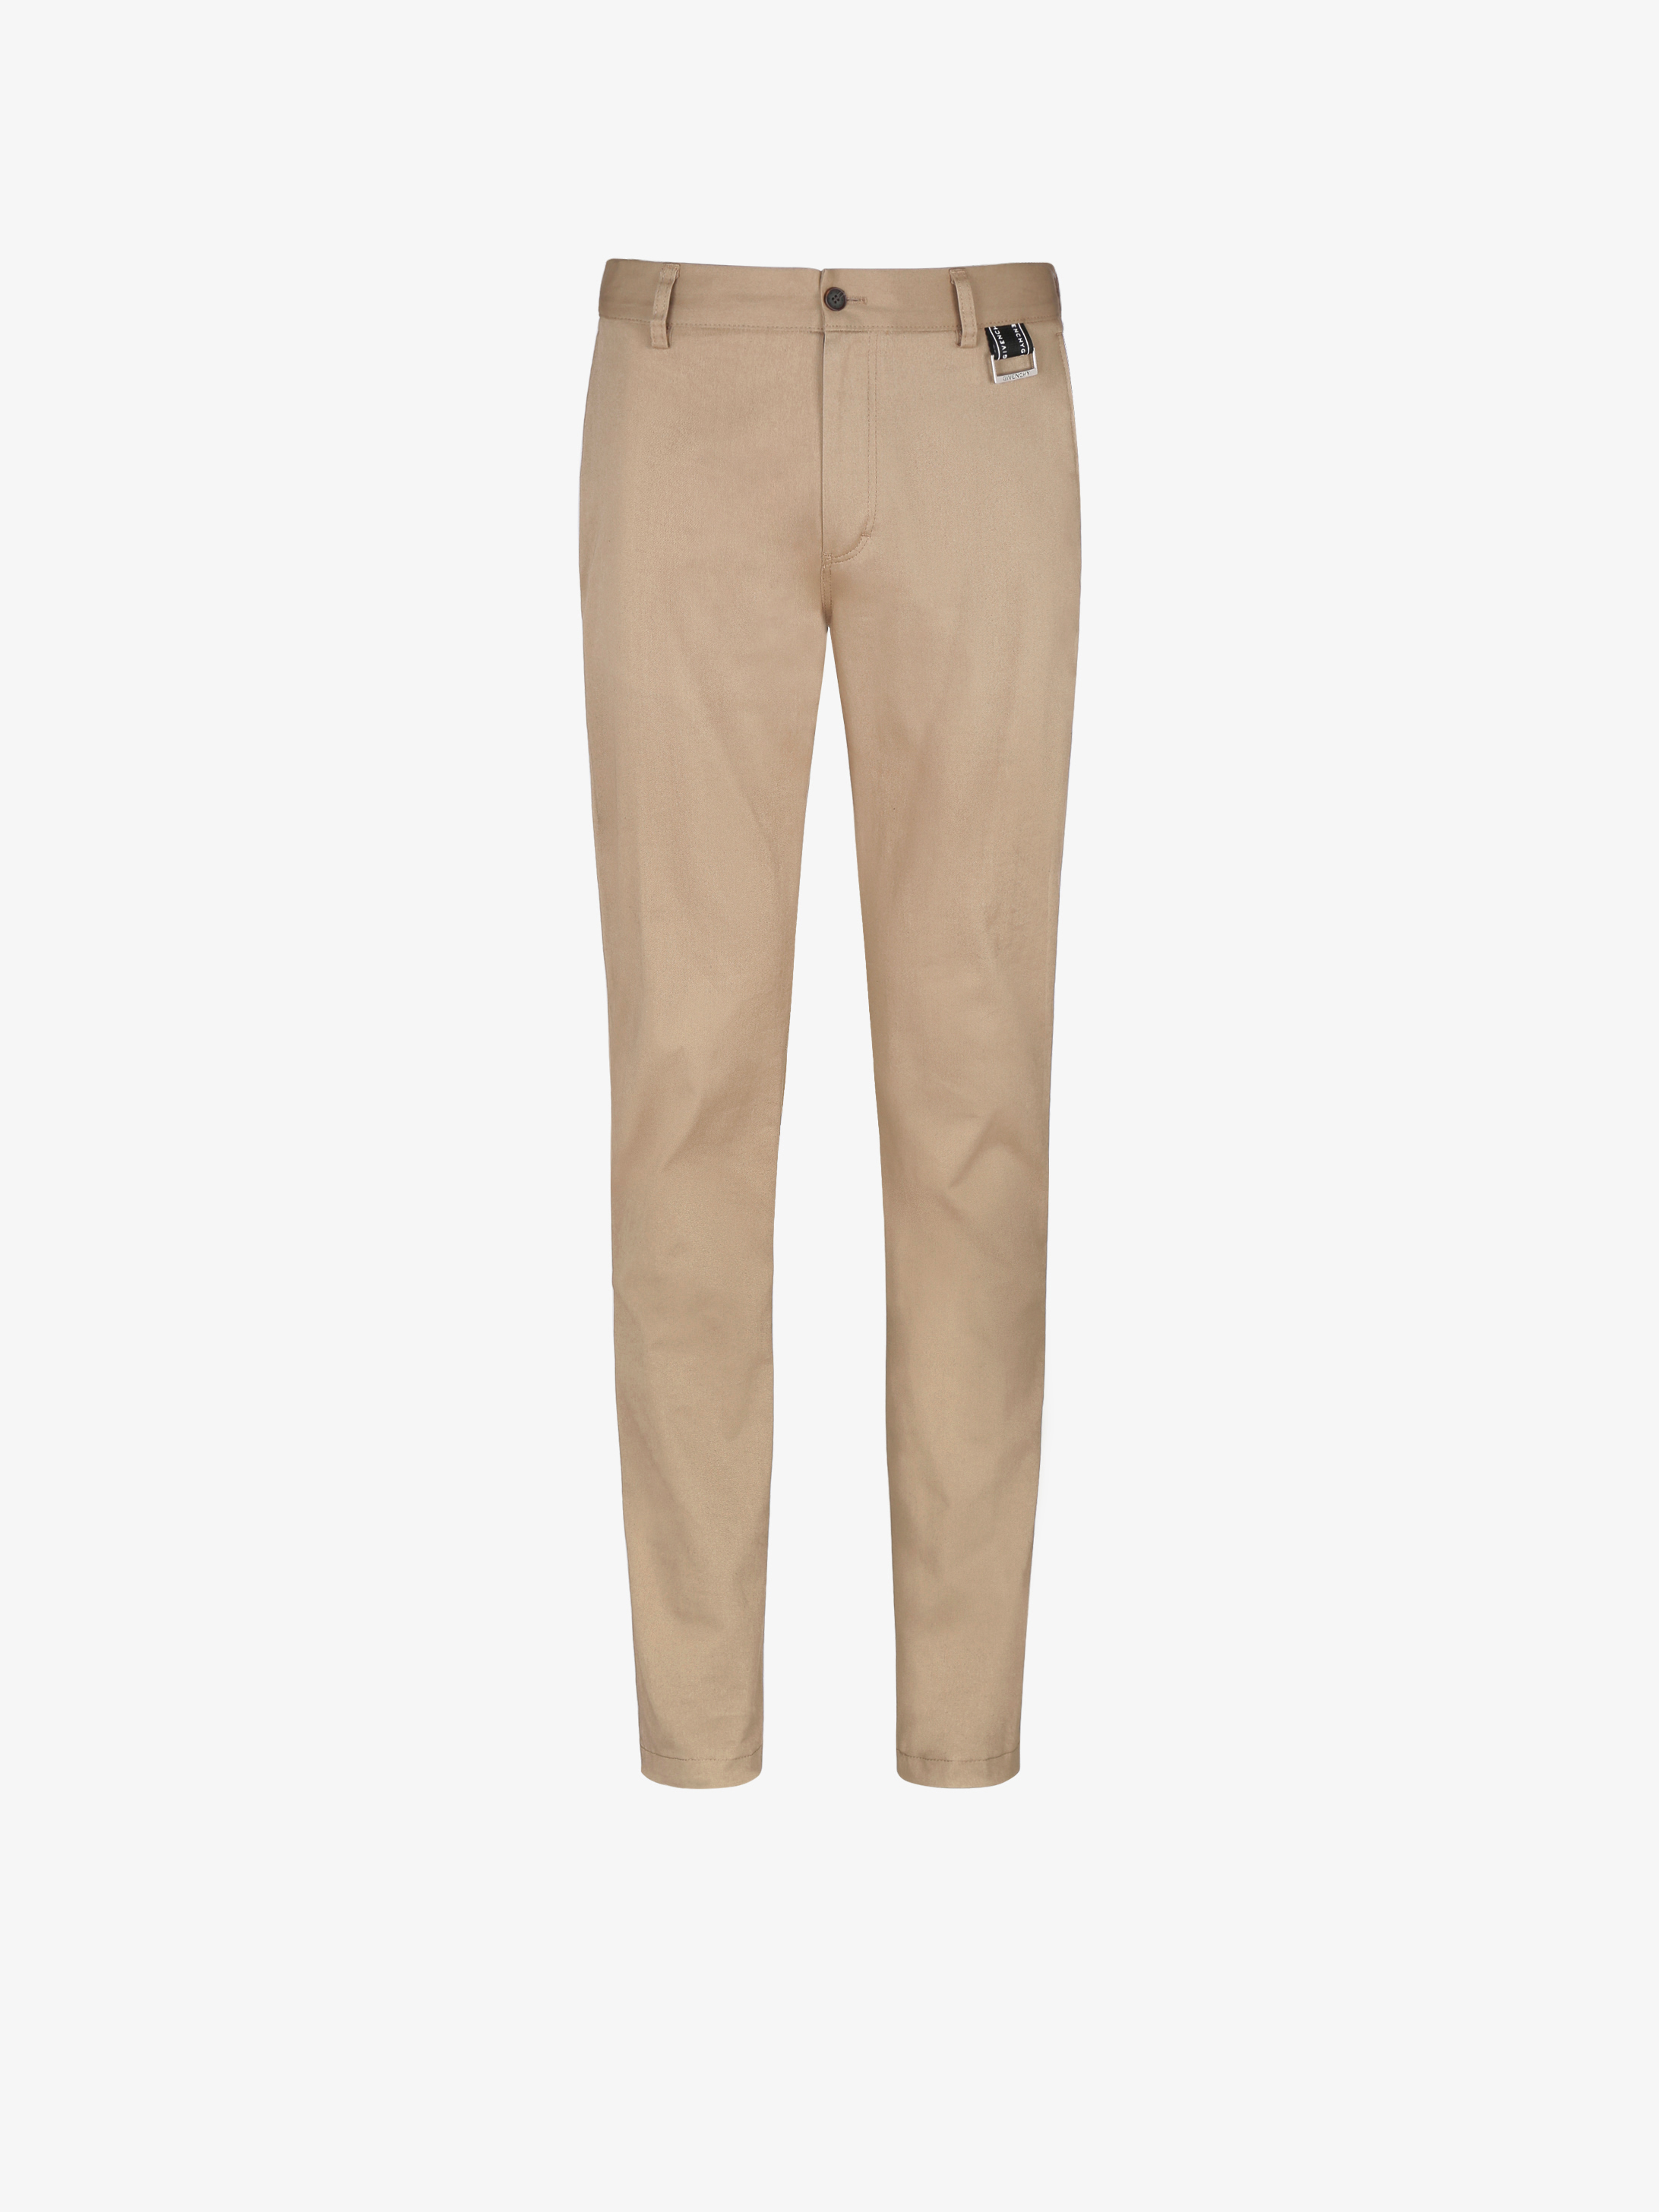 GIVENCHY band slim fit pants chino with buckle